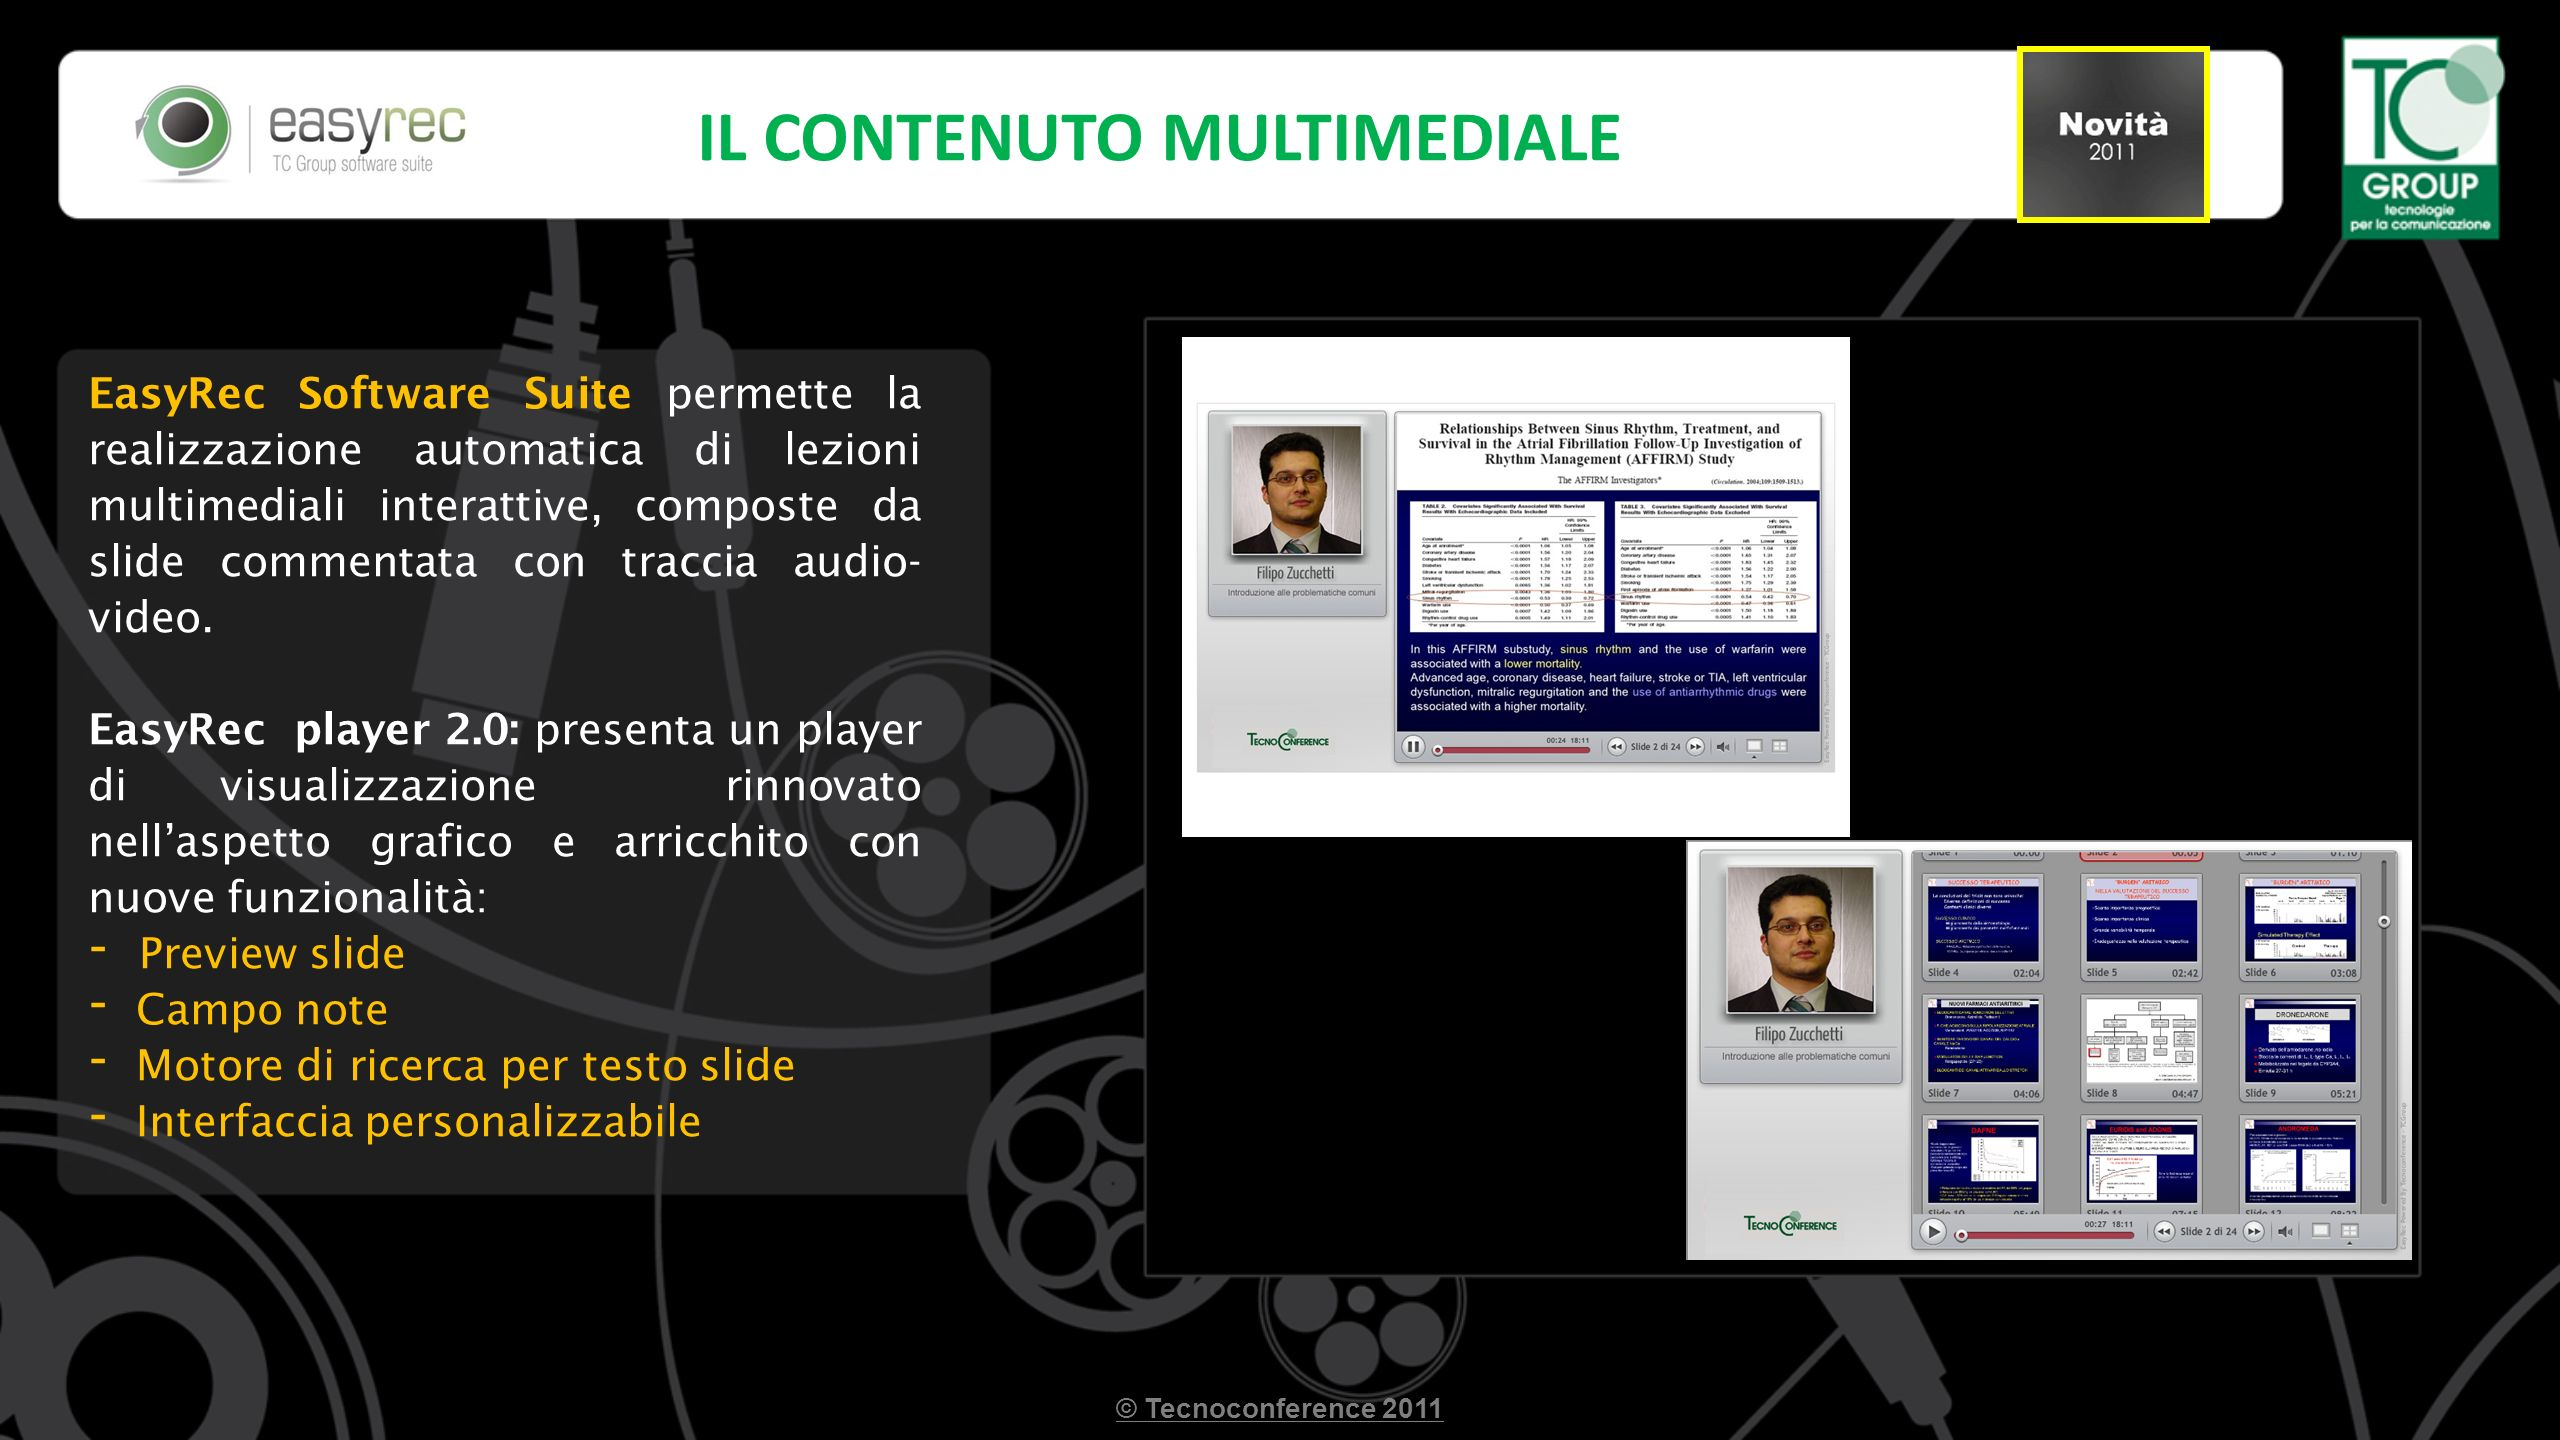 EASYR EasyRec Software Suite permette la realizzazione automatica di lezioni multimediali interattive, composte da slide commentata con traccia audio- video.